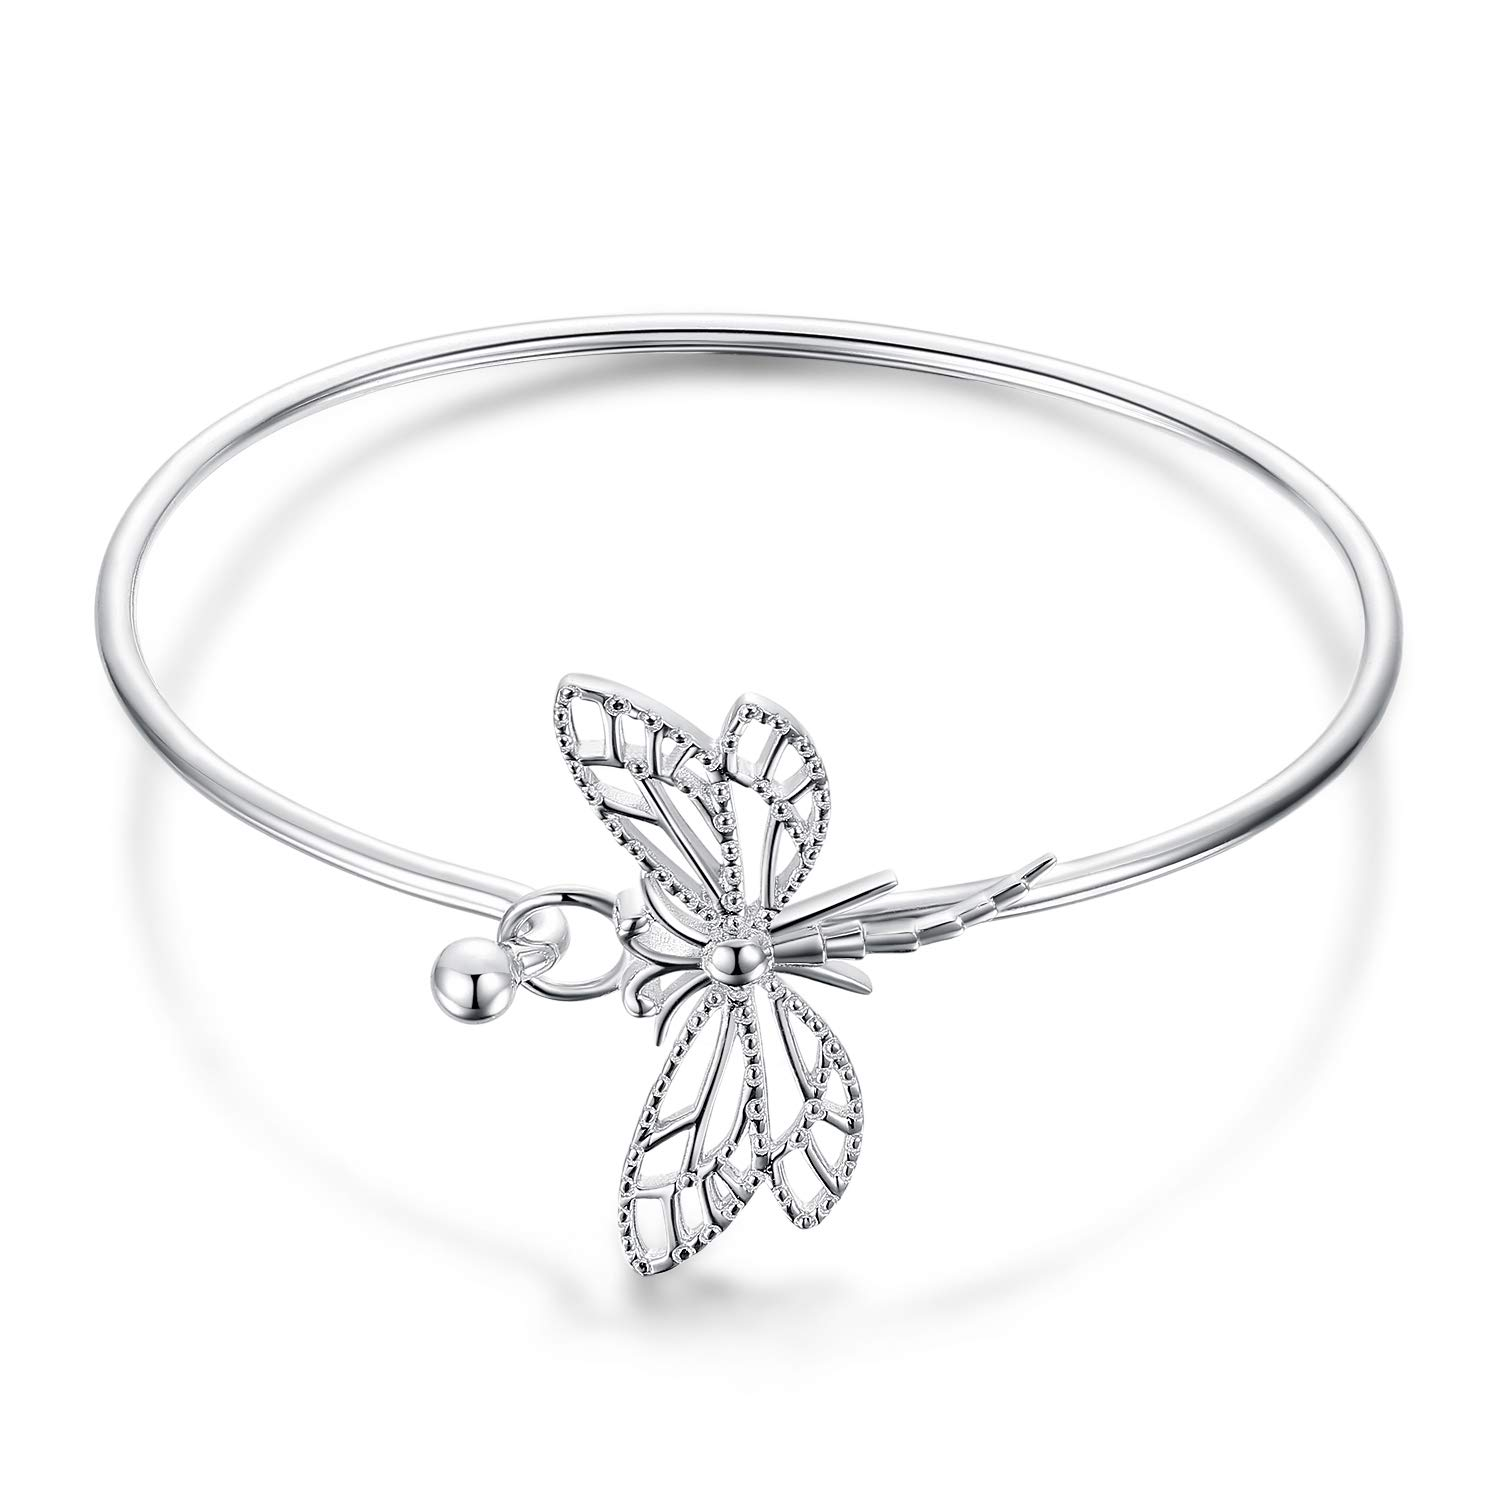 JewelryPalace 925 Sterling Silver Hollow Dragonfly Open Bangle Bracelet